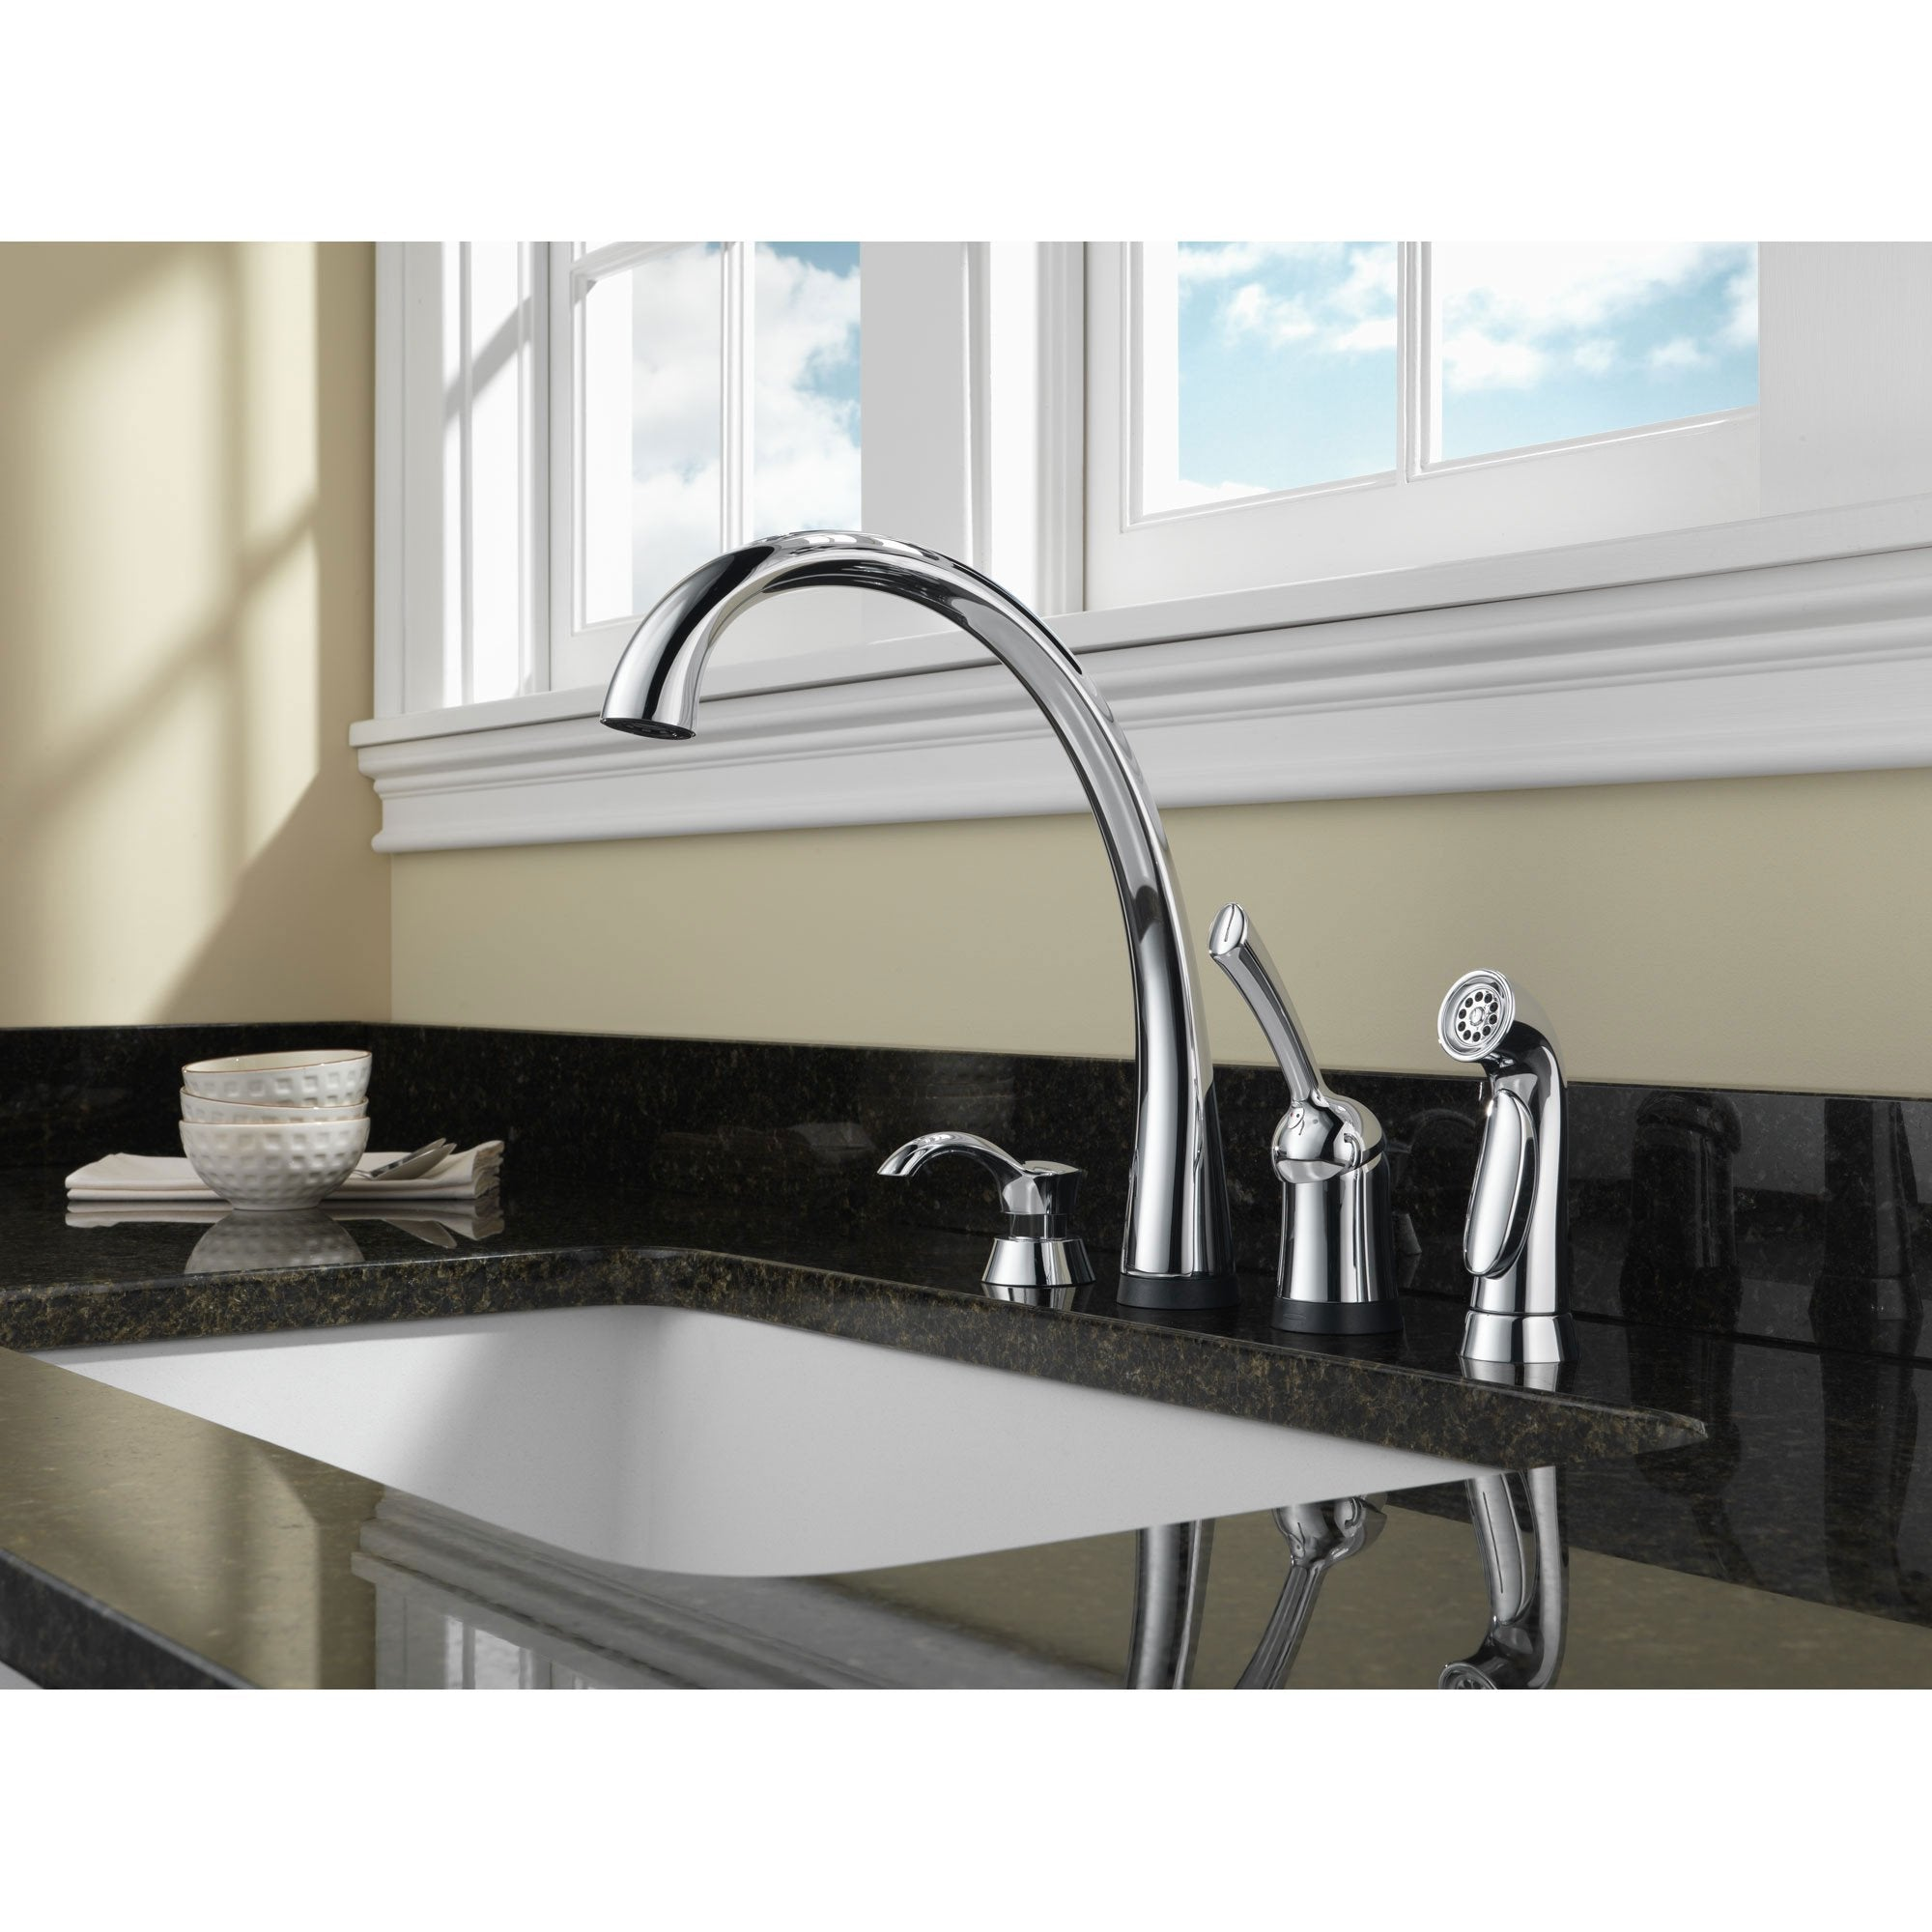 Delta Chrome Finish Pilar Collection Single Handle Kitchen Faucet with Touch2O Technology and Side Spray and Deck Mount Soap Dispenser Package D071CR